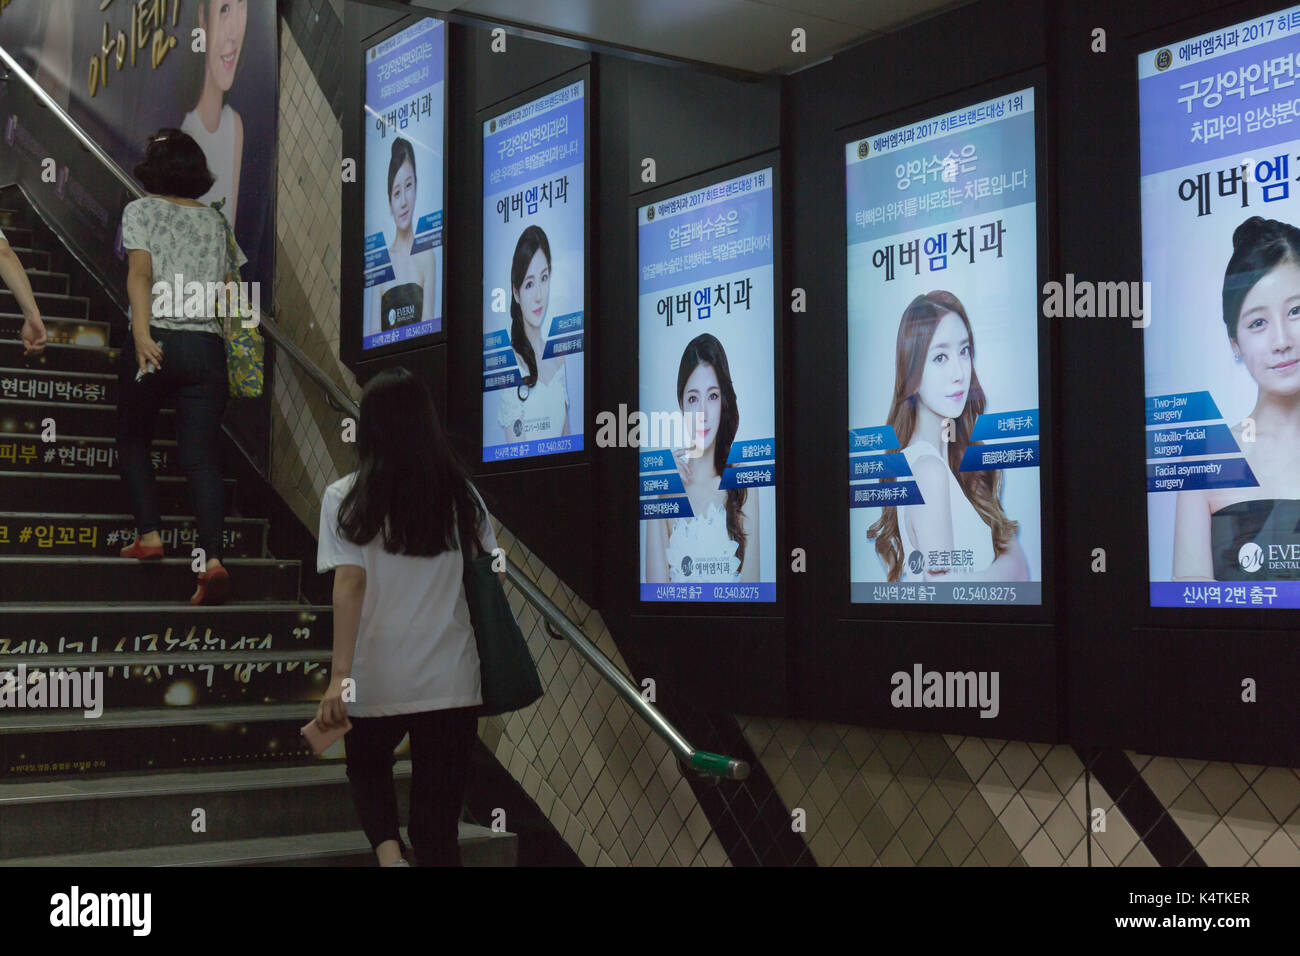 Plastic surgery clinic ads fill the wall and stairs at the subway station of Sinsa in Seoul, South Korea. Stock Photo